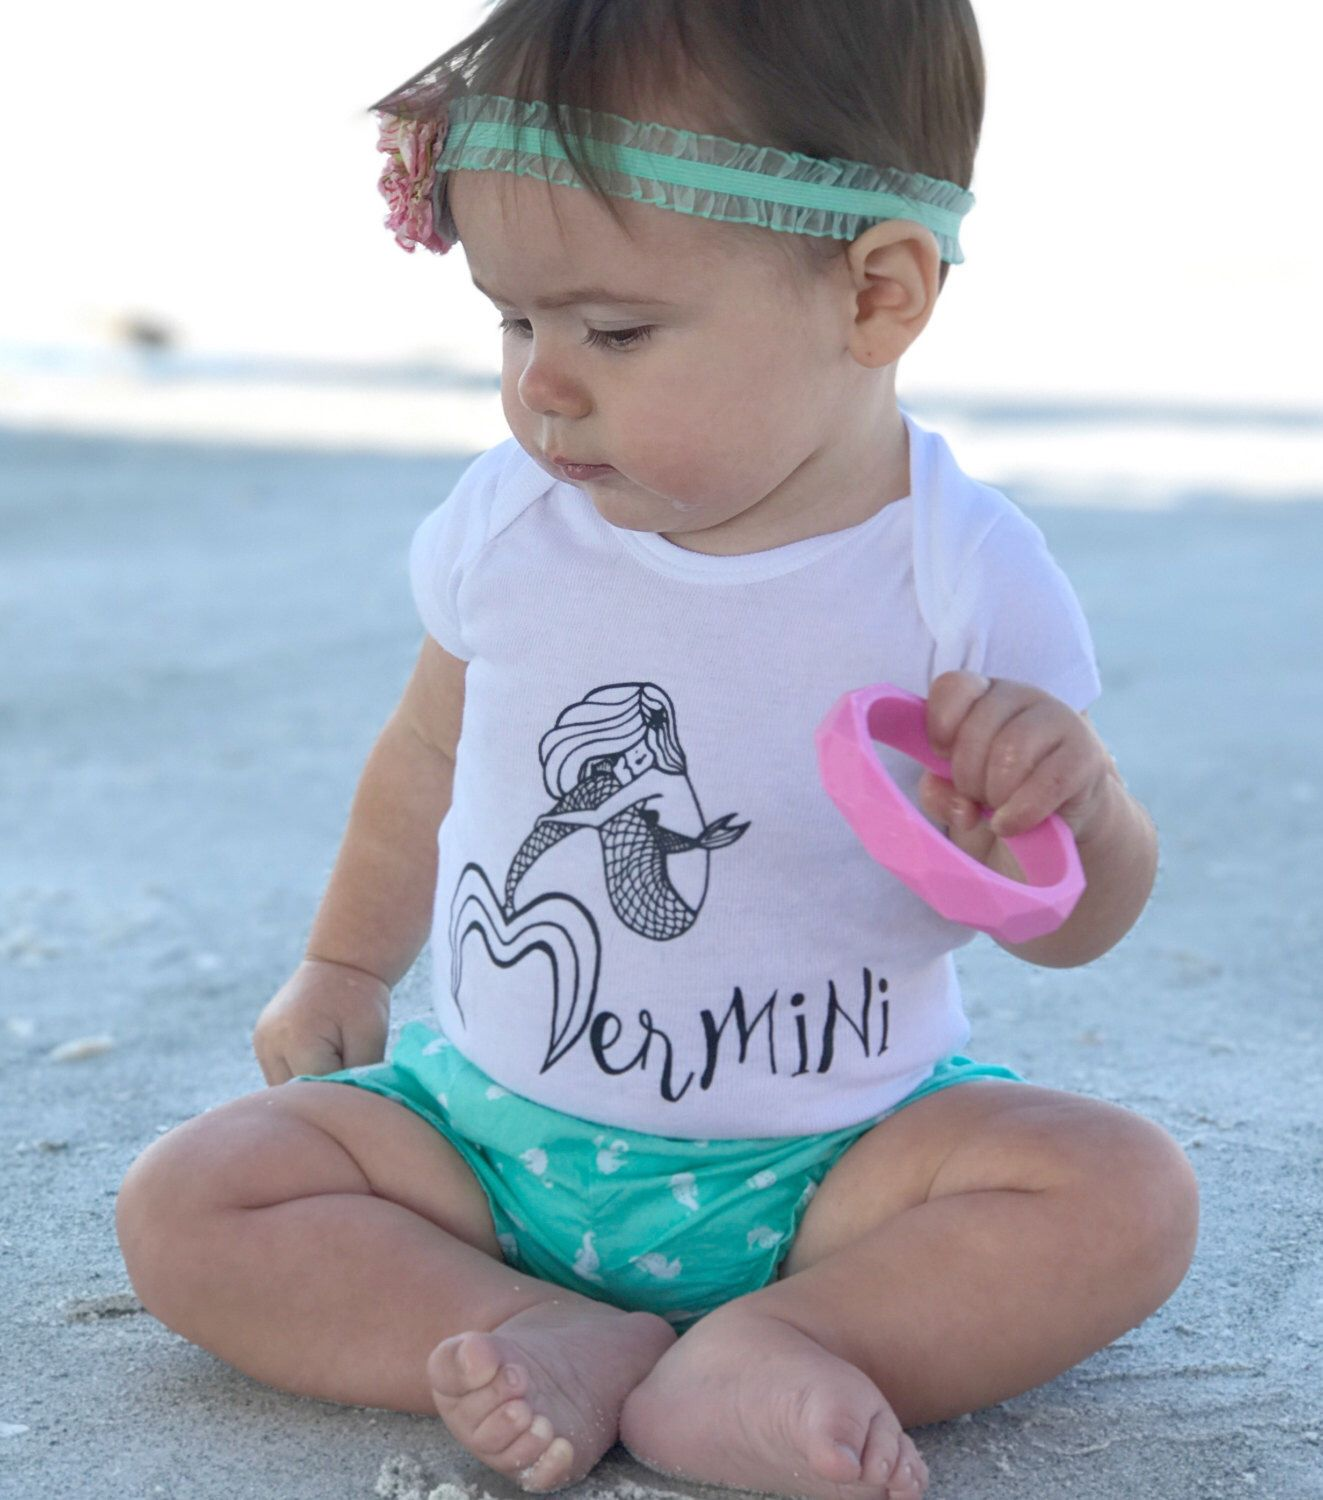 When I Grow Up I Want to Be A Mermaid Newbaby Baby Bodysuit Short Sleeve Jumpsuit Summer Onesie